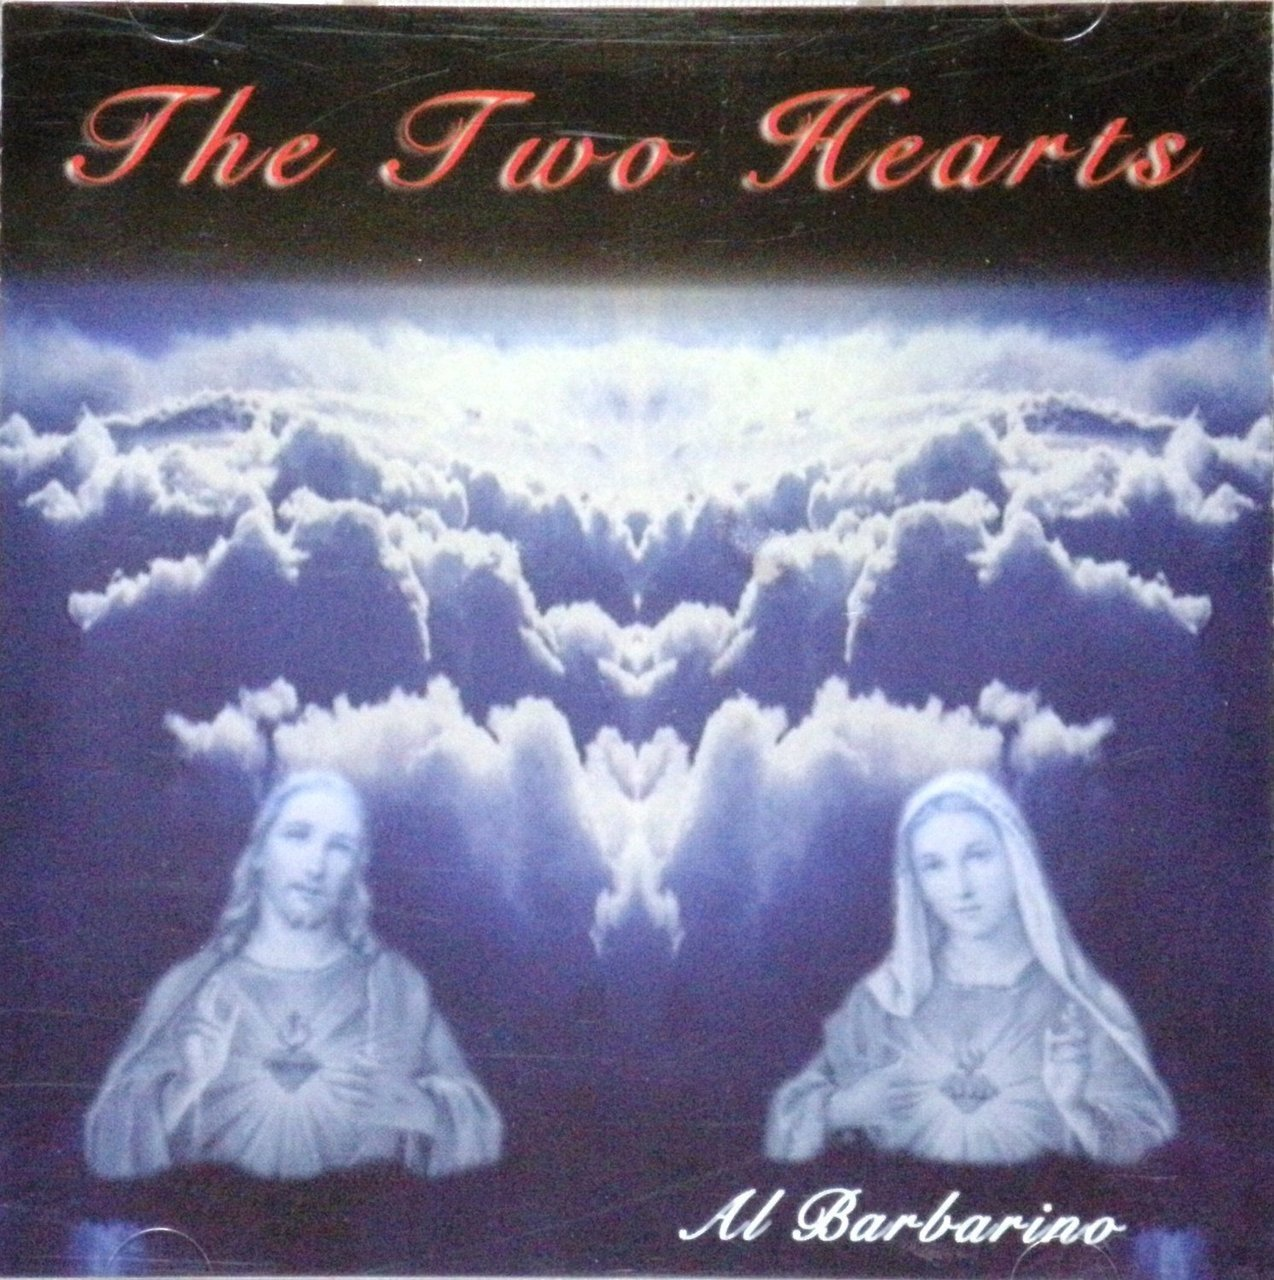 The two hearts by al barbarino